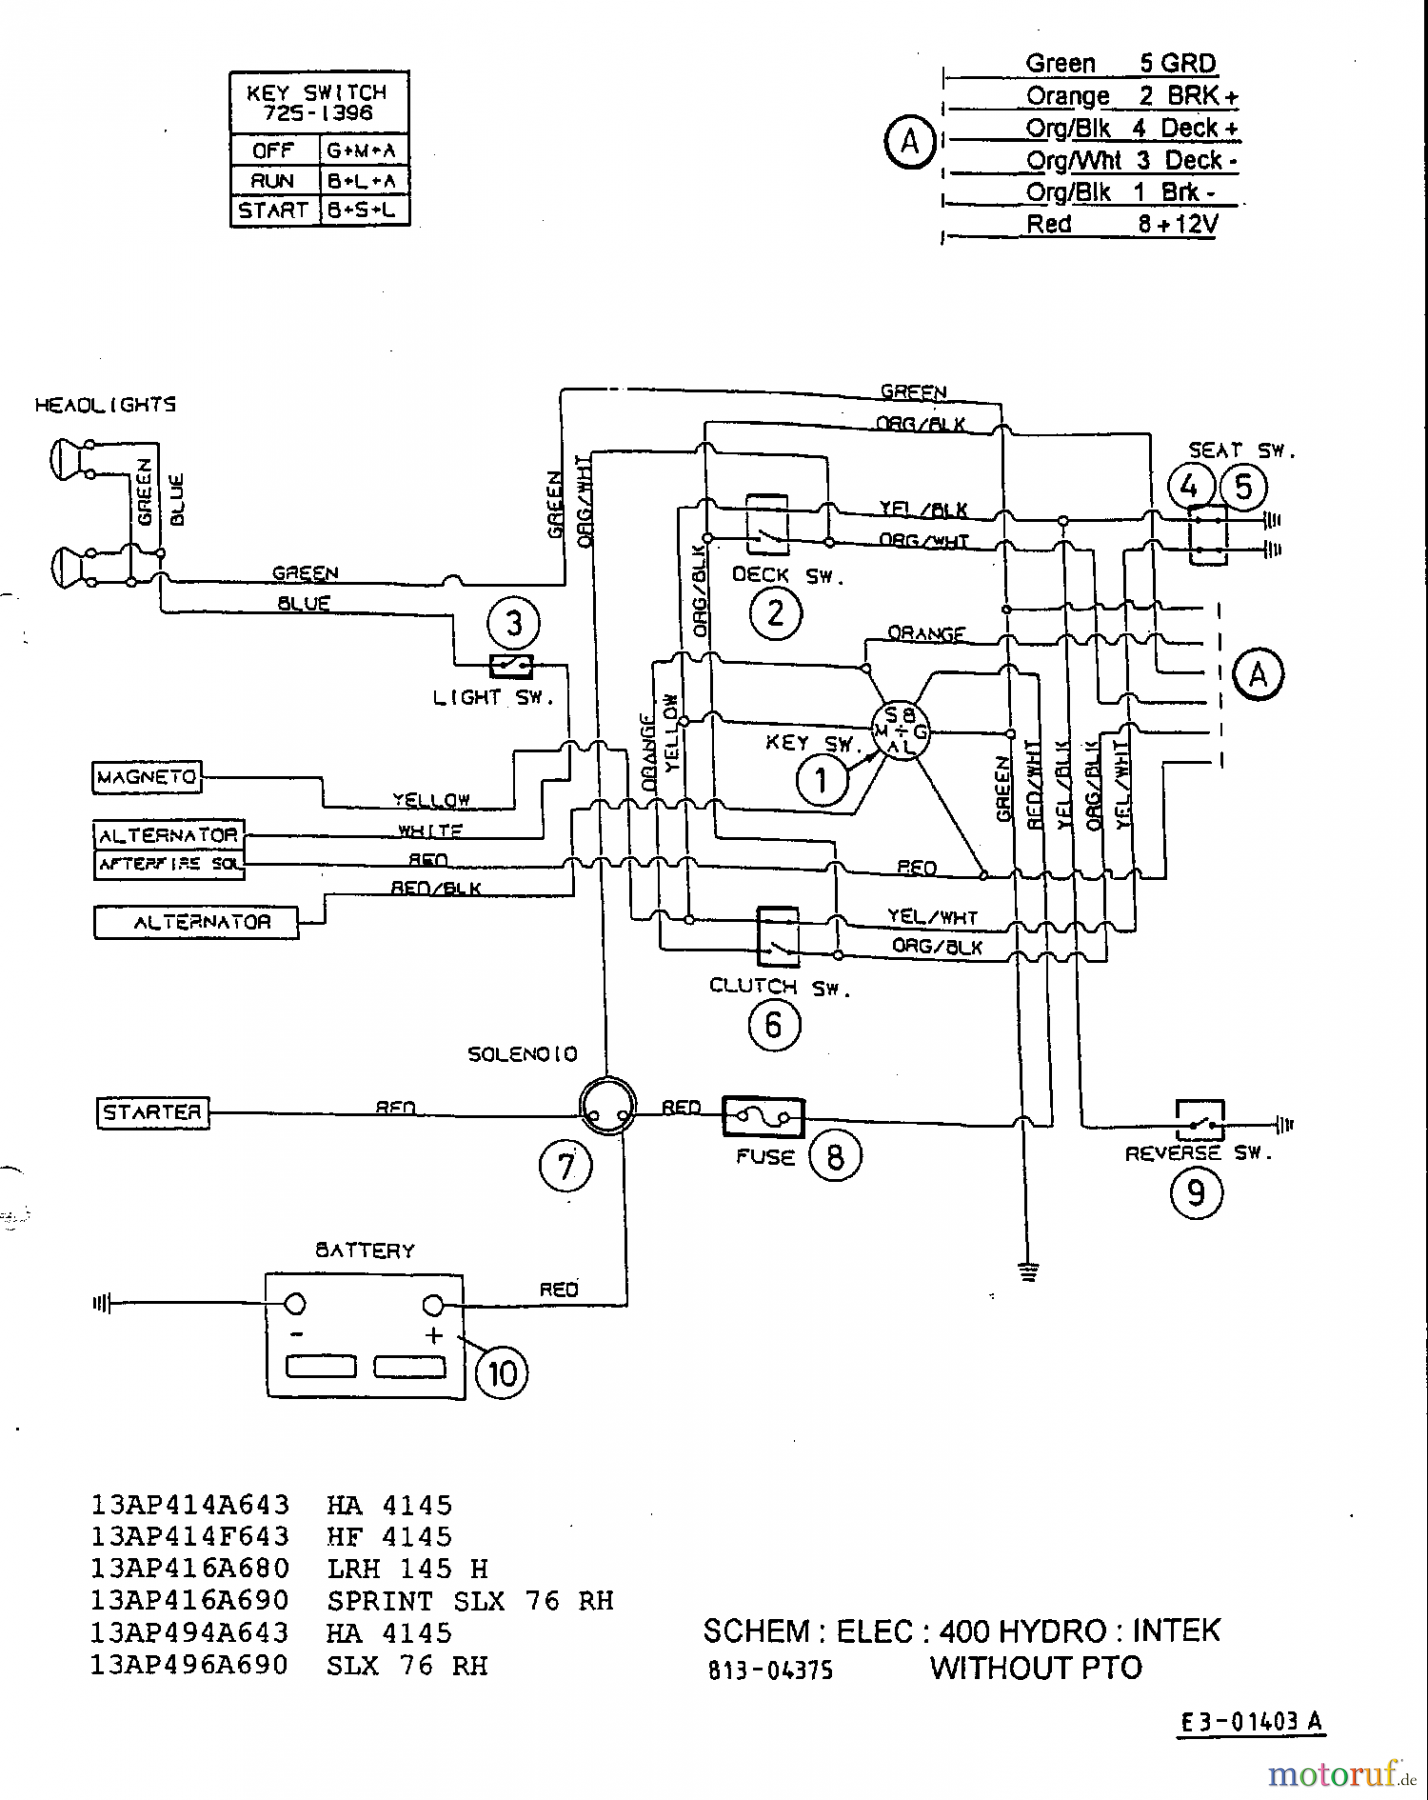 medium resolution of mtd riding mower wiring diagram with yard machine on mtd ride onmtd riding mower wiring diagram